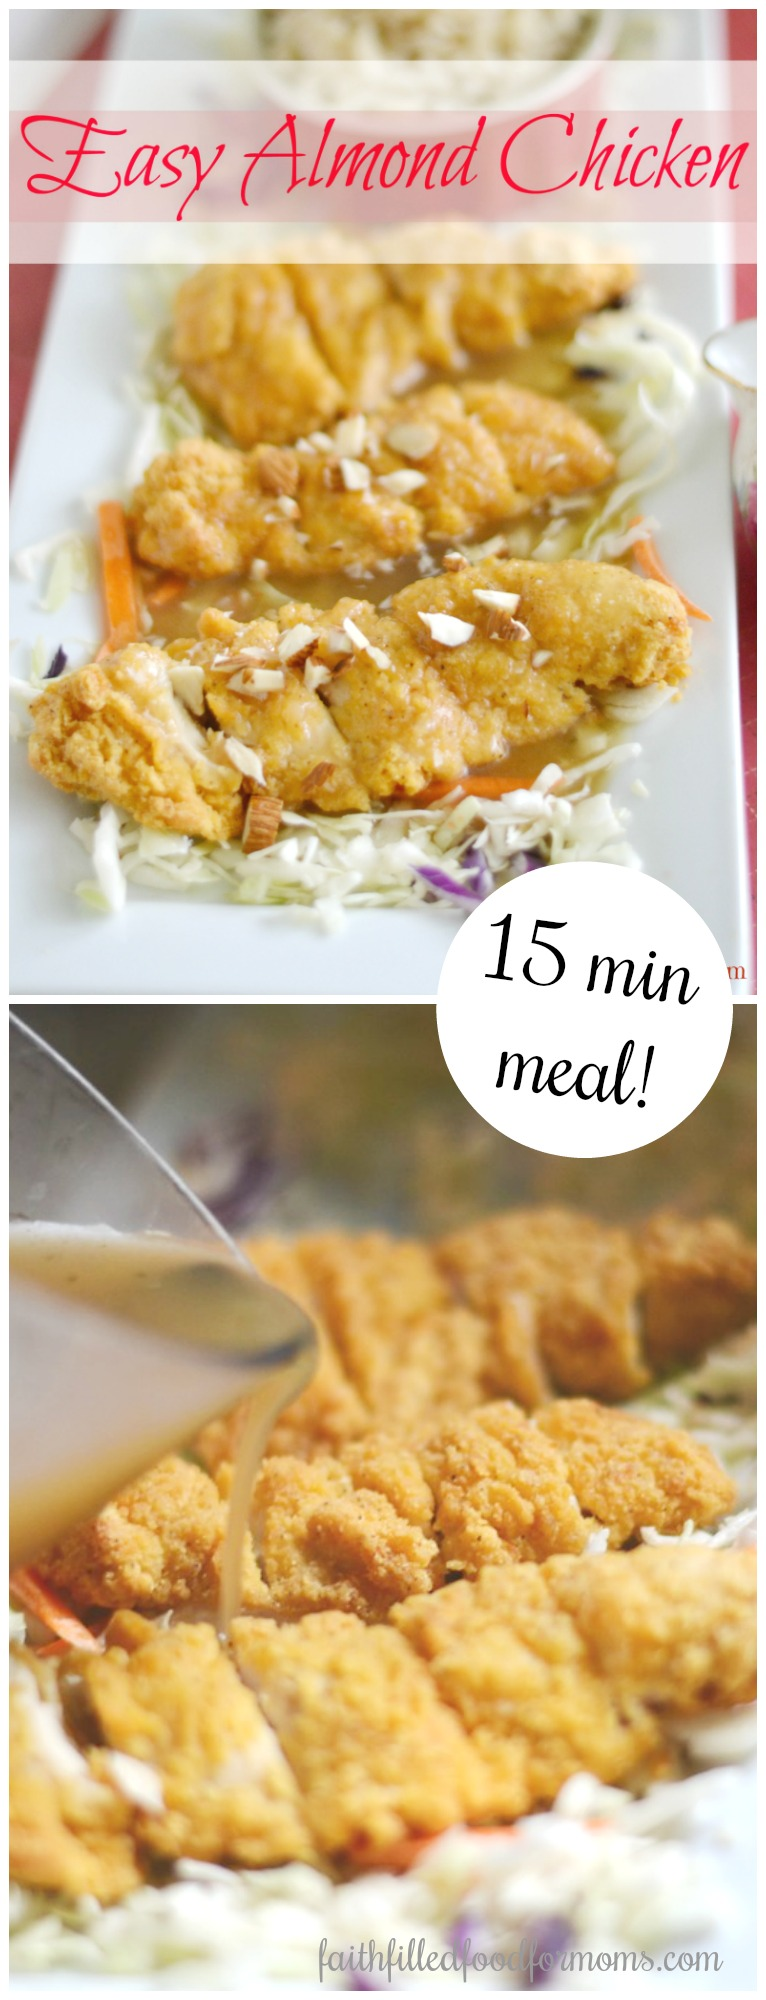 Easy Almond Chicken